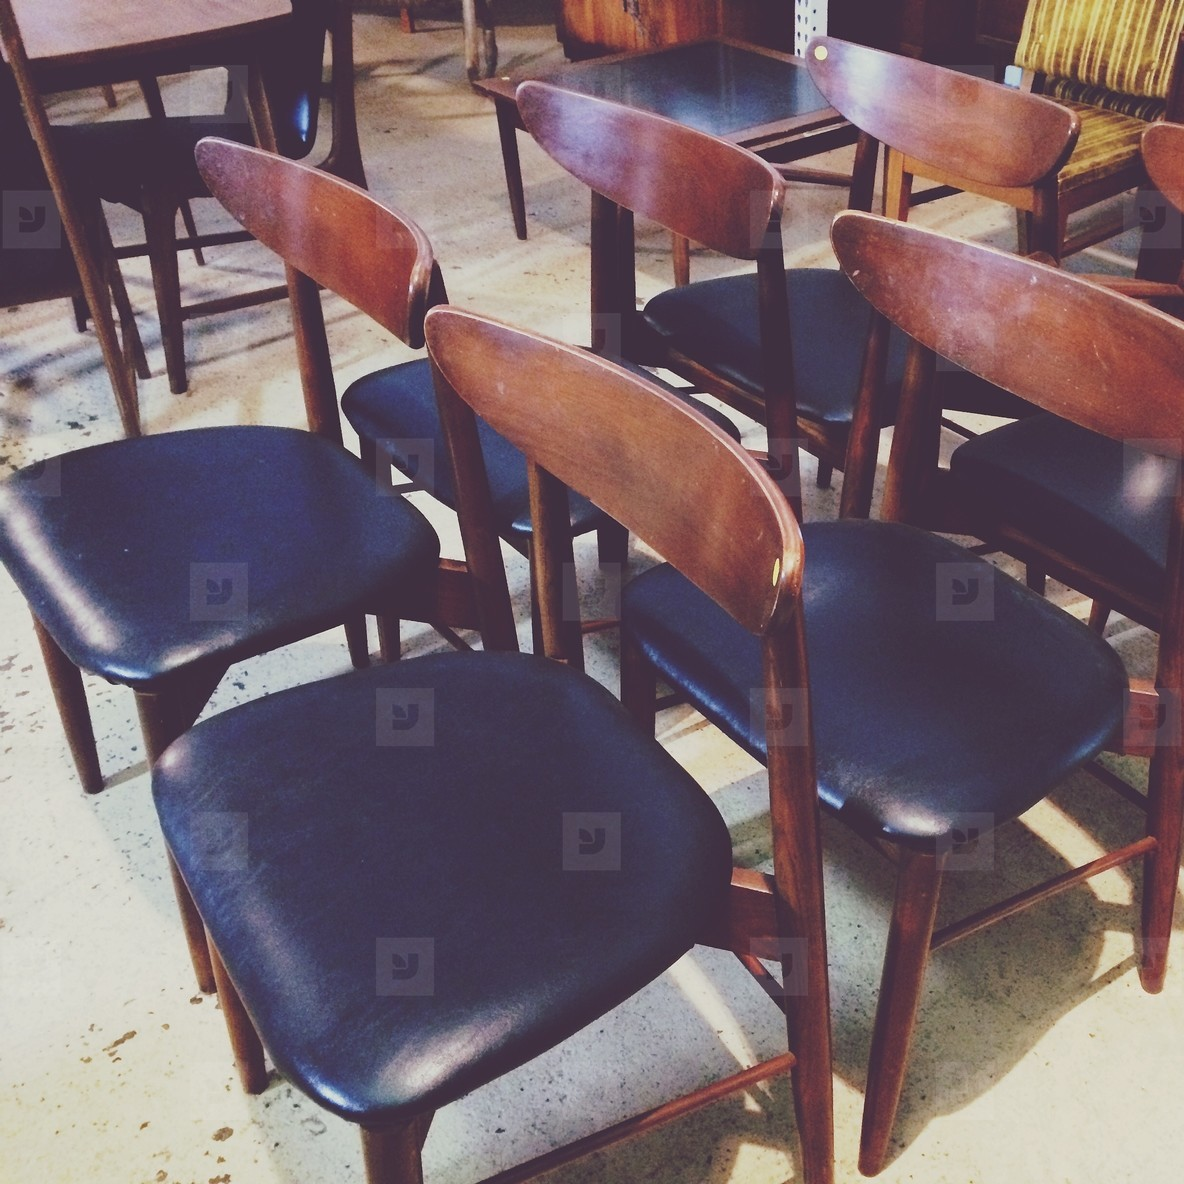 A full set of chairs